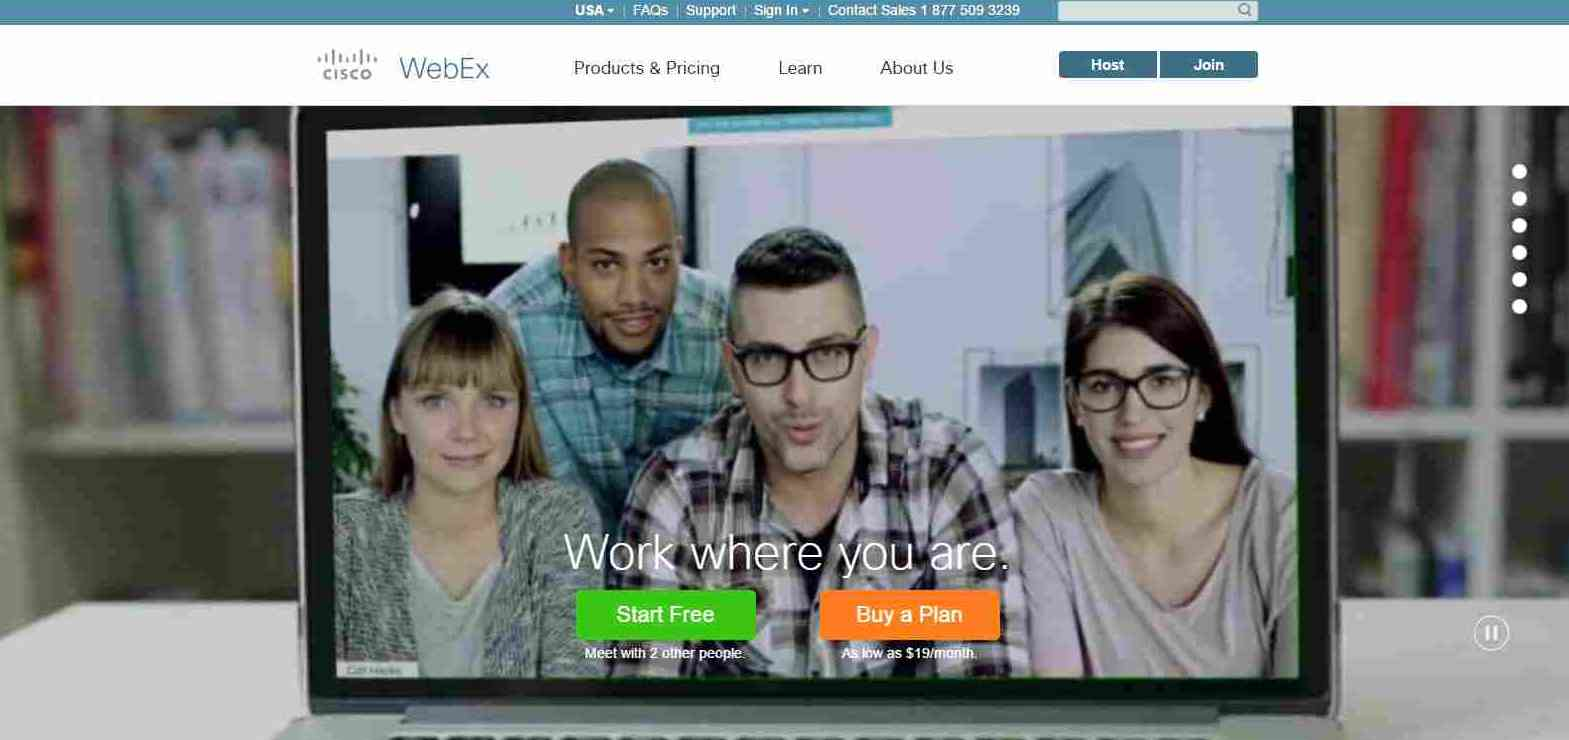 WebEx Video Conferencing and Collaboration